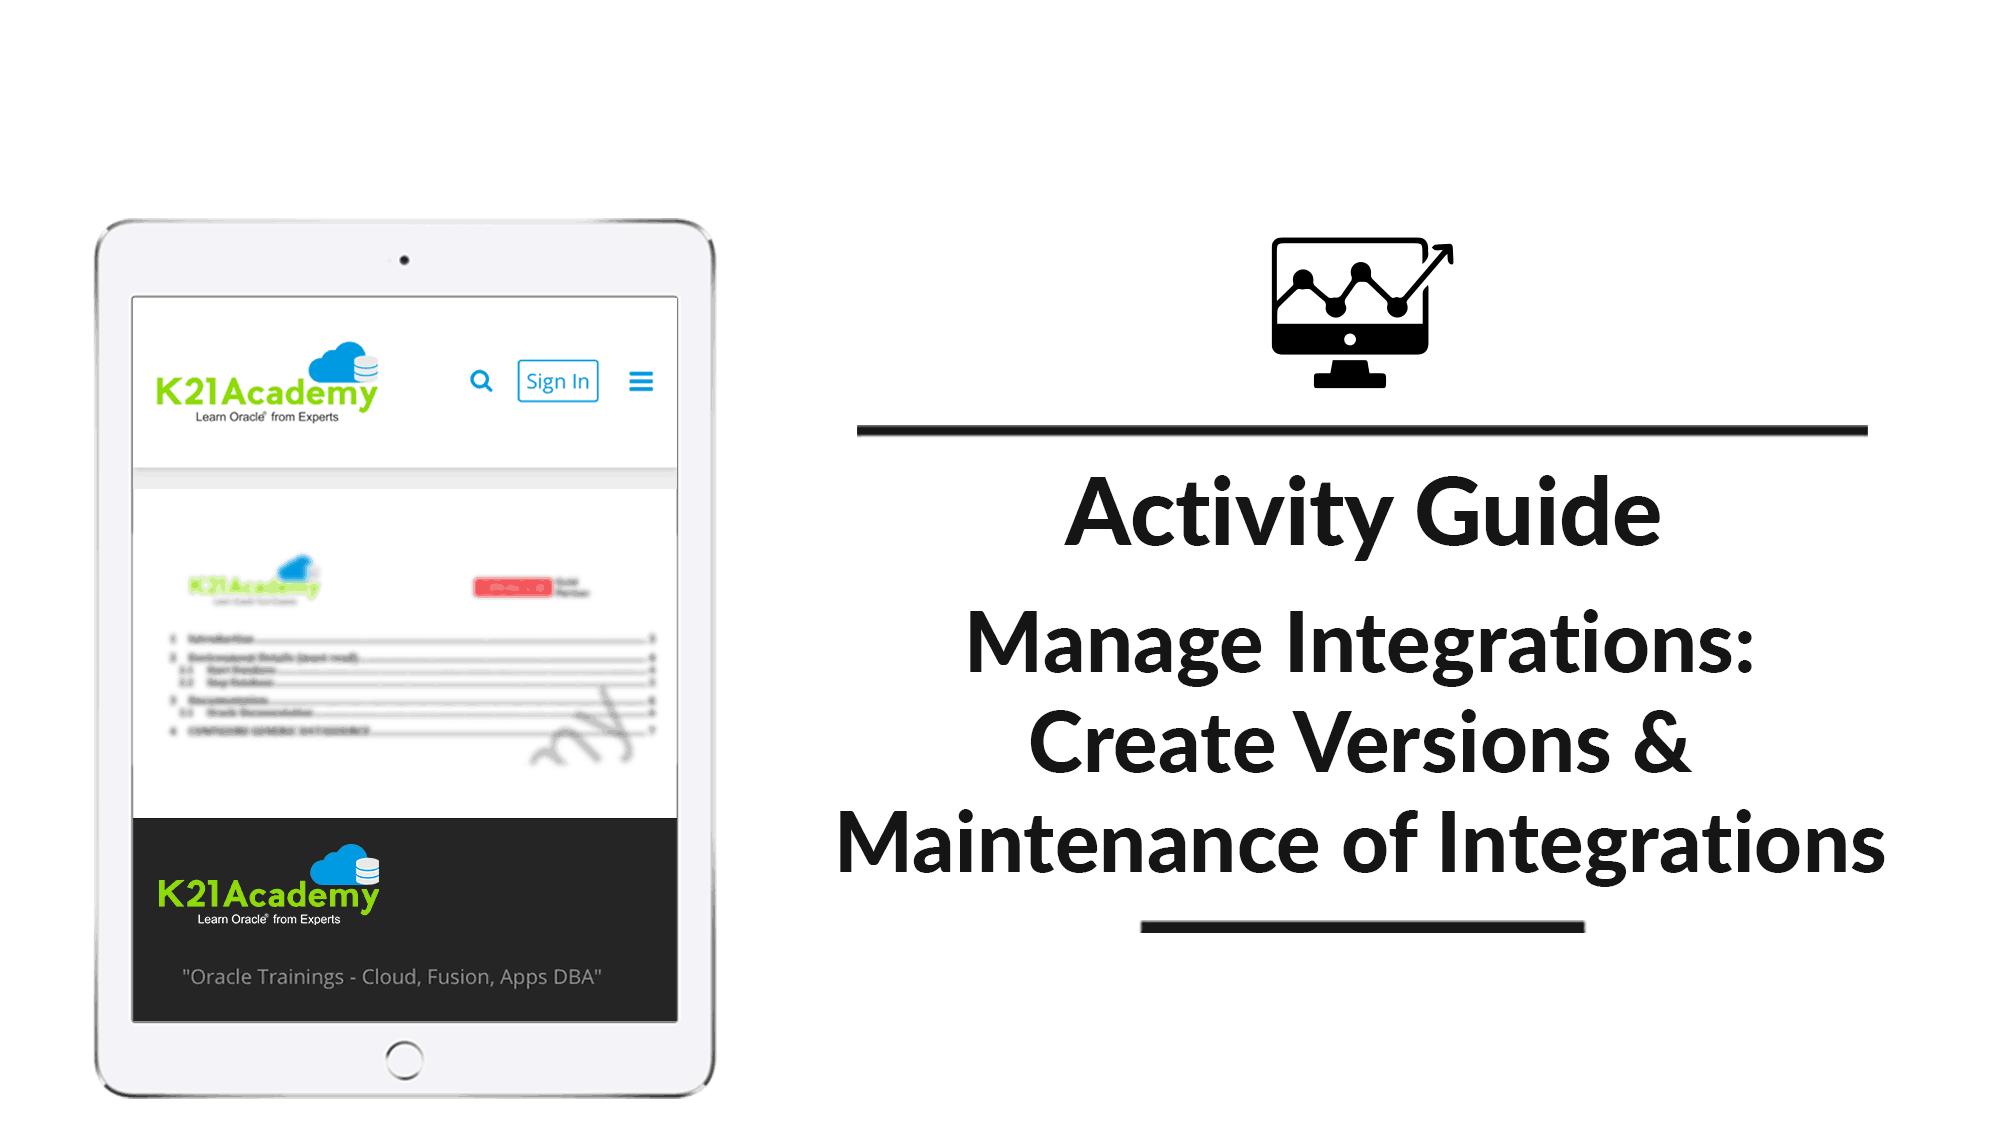 Manage Integrations: Create versions & Maintenance of Integrations